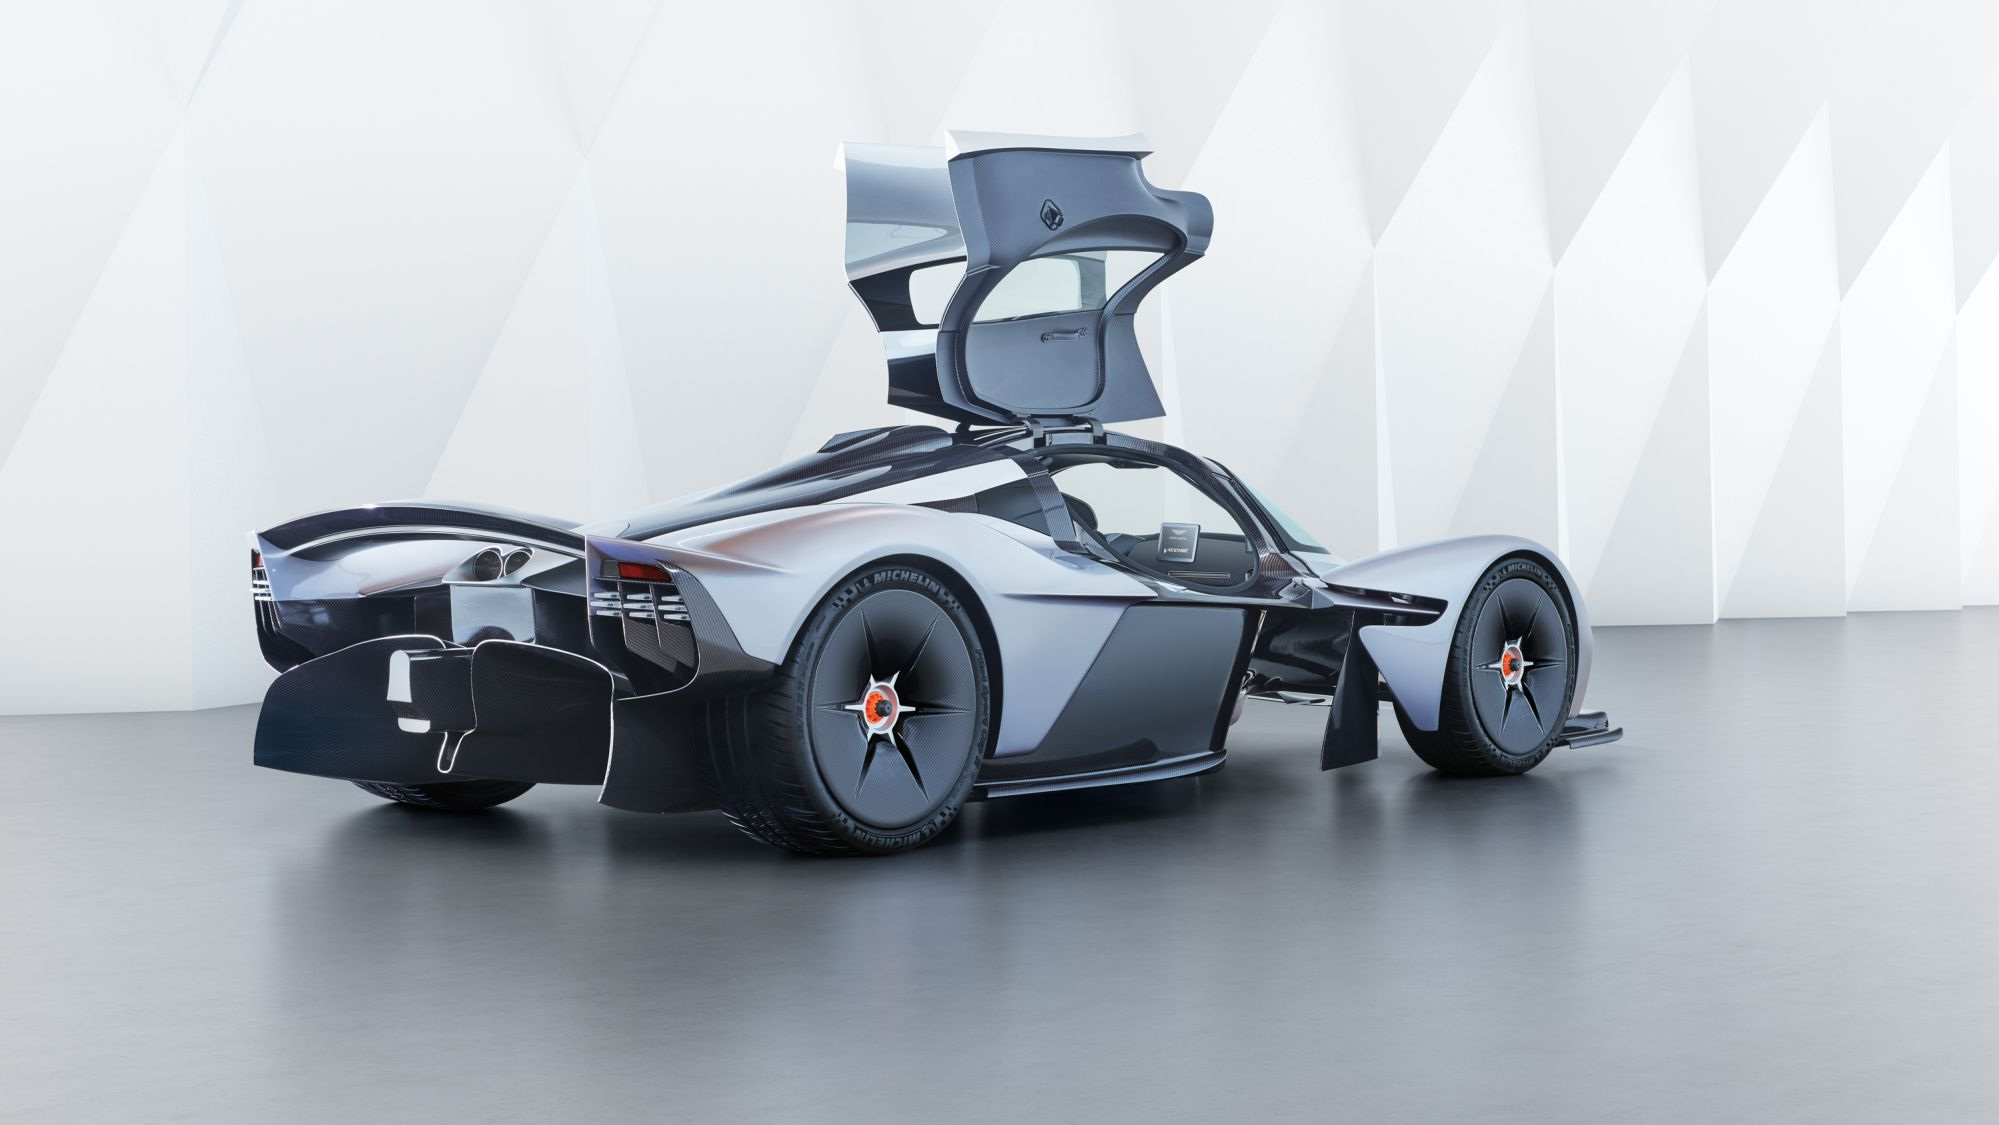 Listen To The Roar Of The Aston Martin Valkyrie